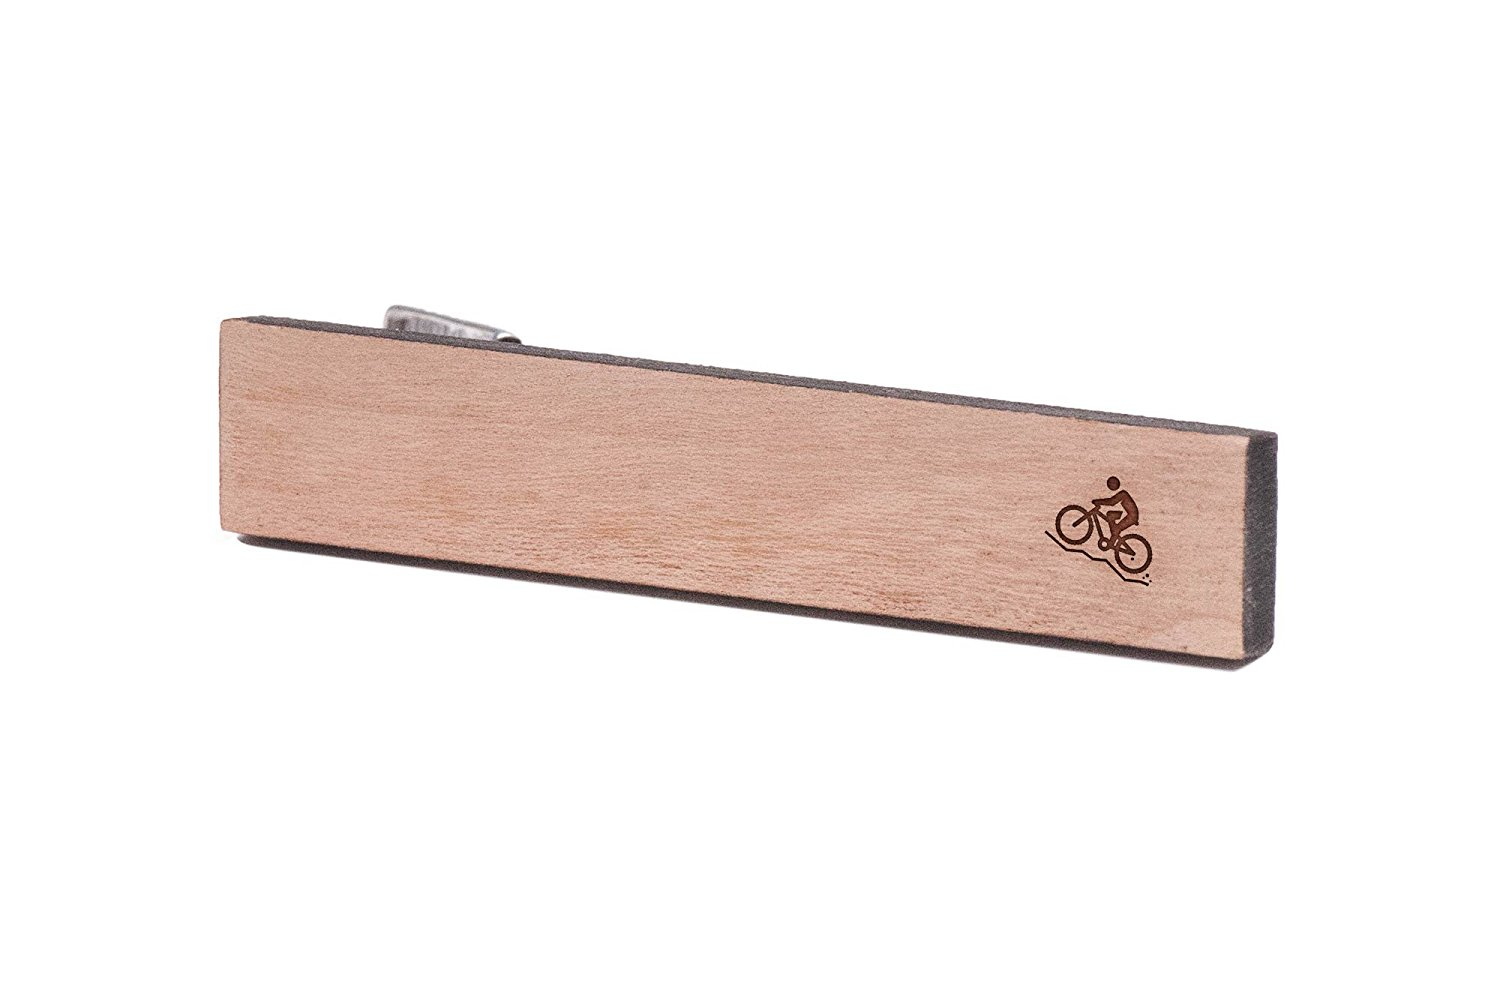 Cherry Wood Tie Bar Engraved in The USA Wooden Accessories Company Wooden Tie Clips with Laser Engraved Blade of Grass Design